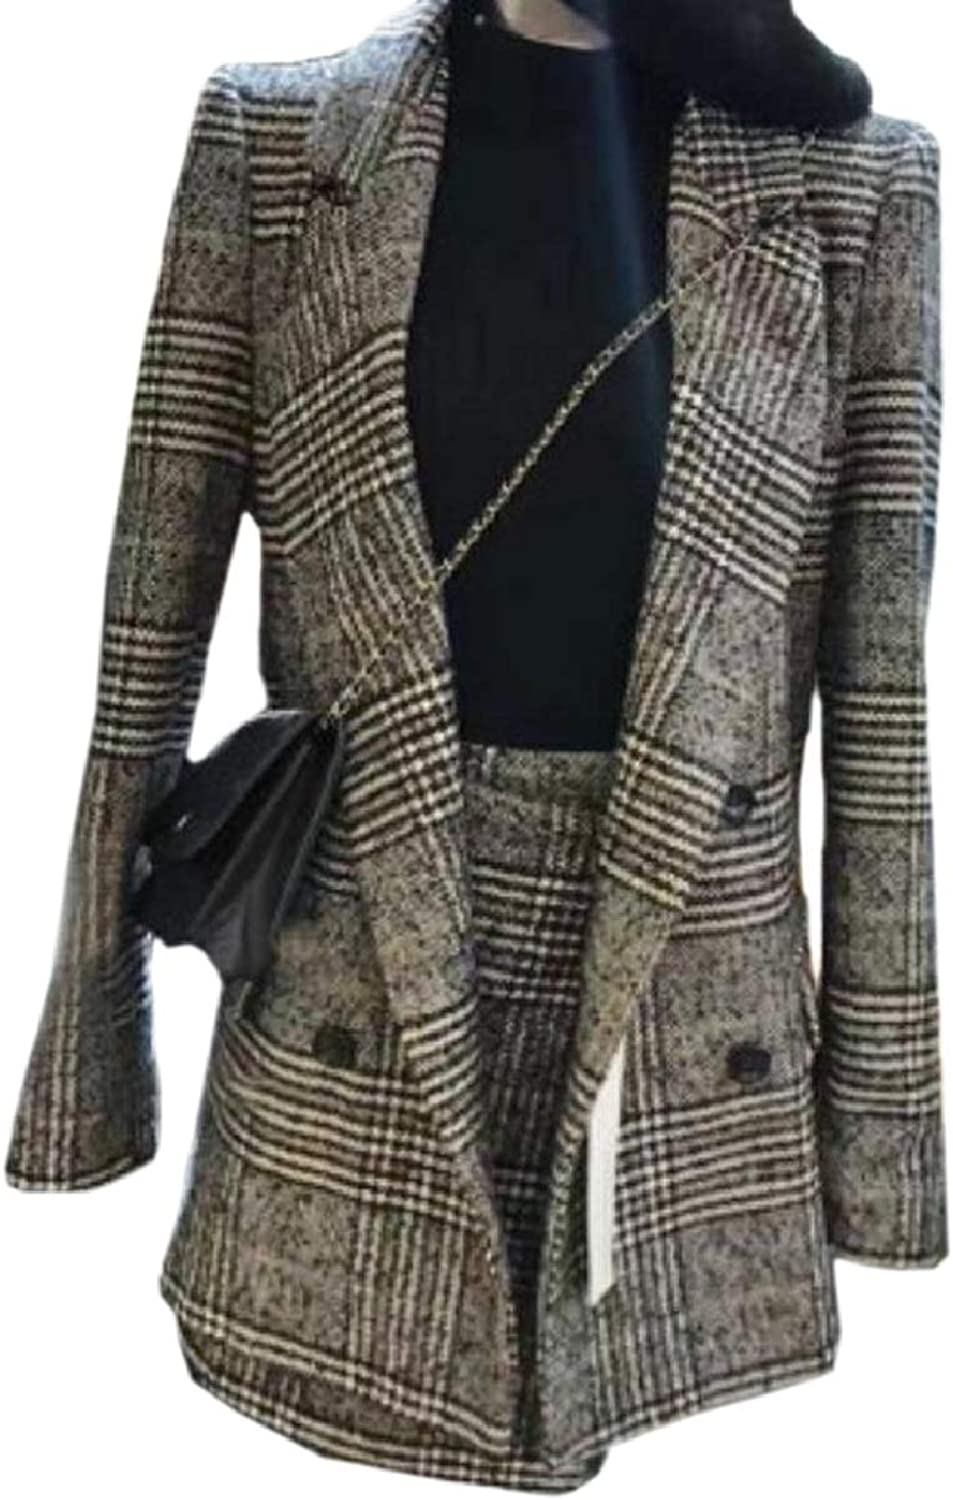 CBTLVSN Women's Lapel Dress Houndstooth Plaid Blazer Double-Breasted Coat Set